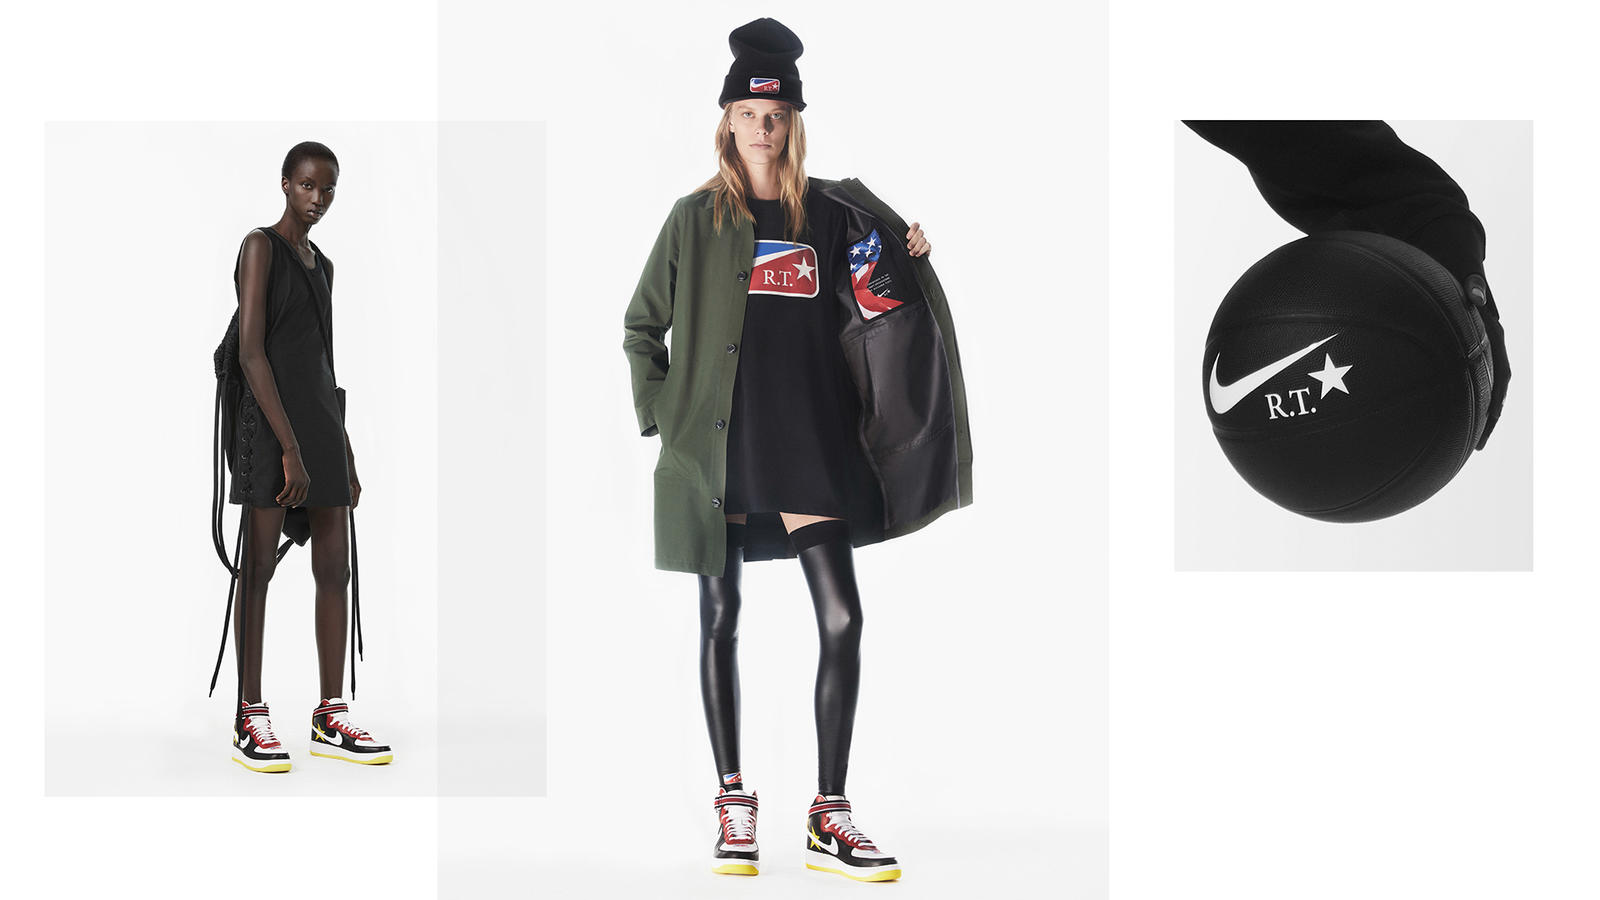 electrodo fuerte canal  Riccardo Tisci's Victorious Minotaurs Deliver Mix of Sporty Elegance - Nike  News